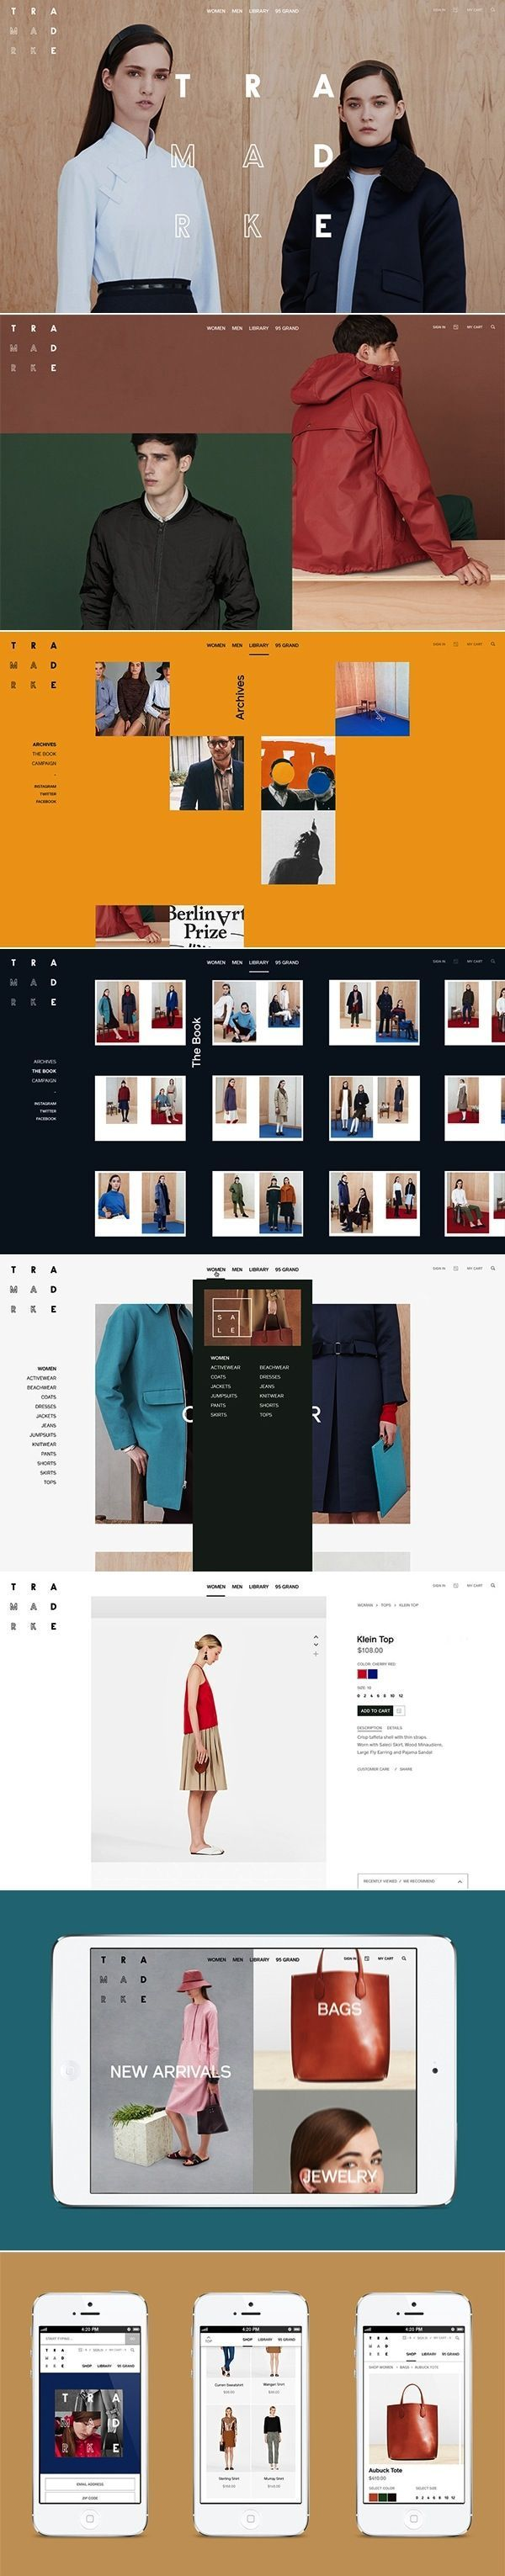 (2) Trademark | Interactive / UI | Pinterest